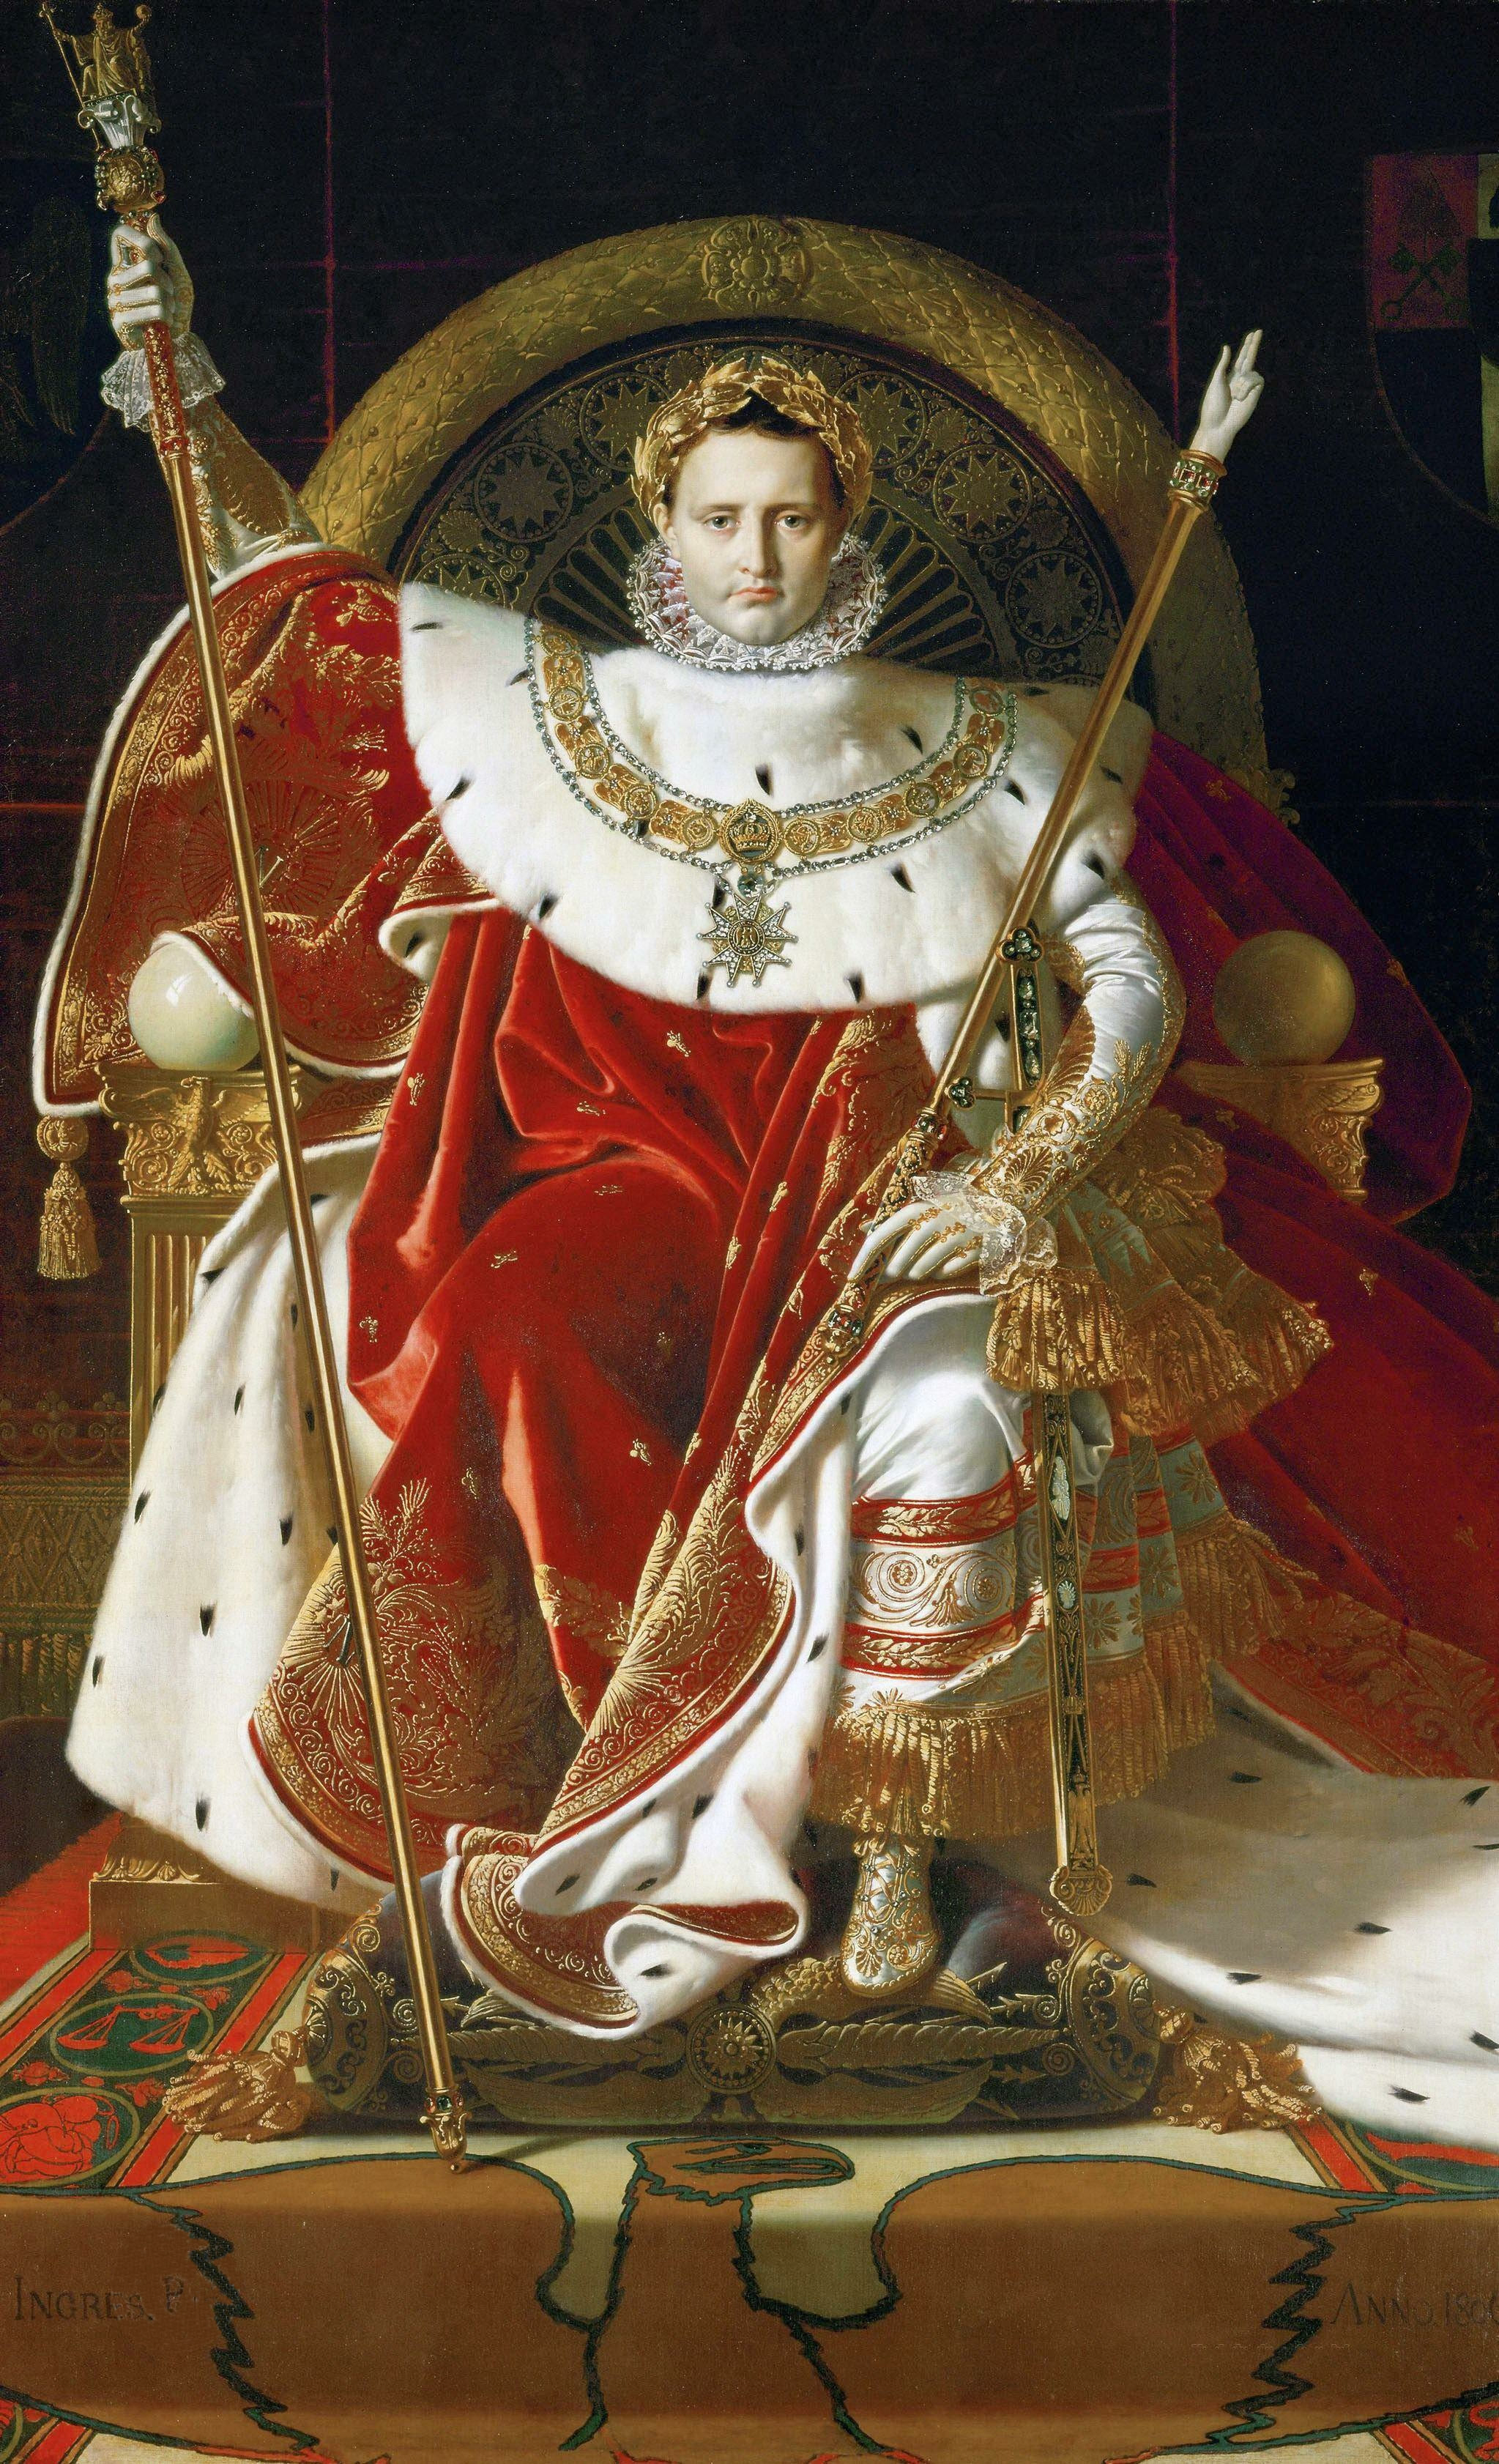 http://upload.wikimedia.org/wikipedia/commons/2/28/Ingres%2C_Napoleon_on_his_Imperial_throne.jpg